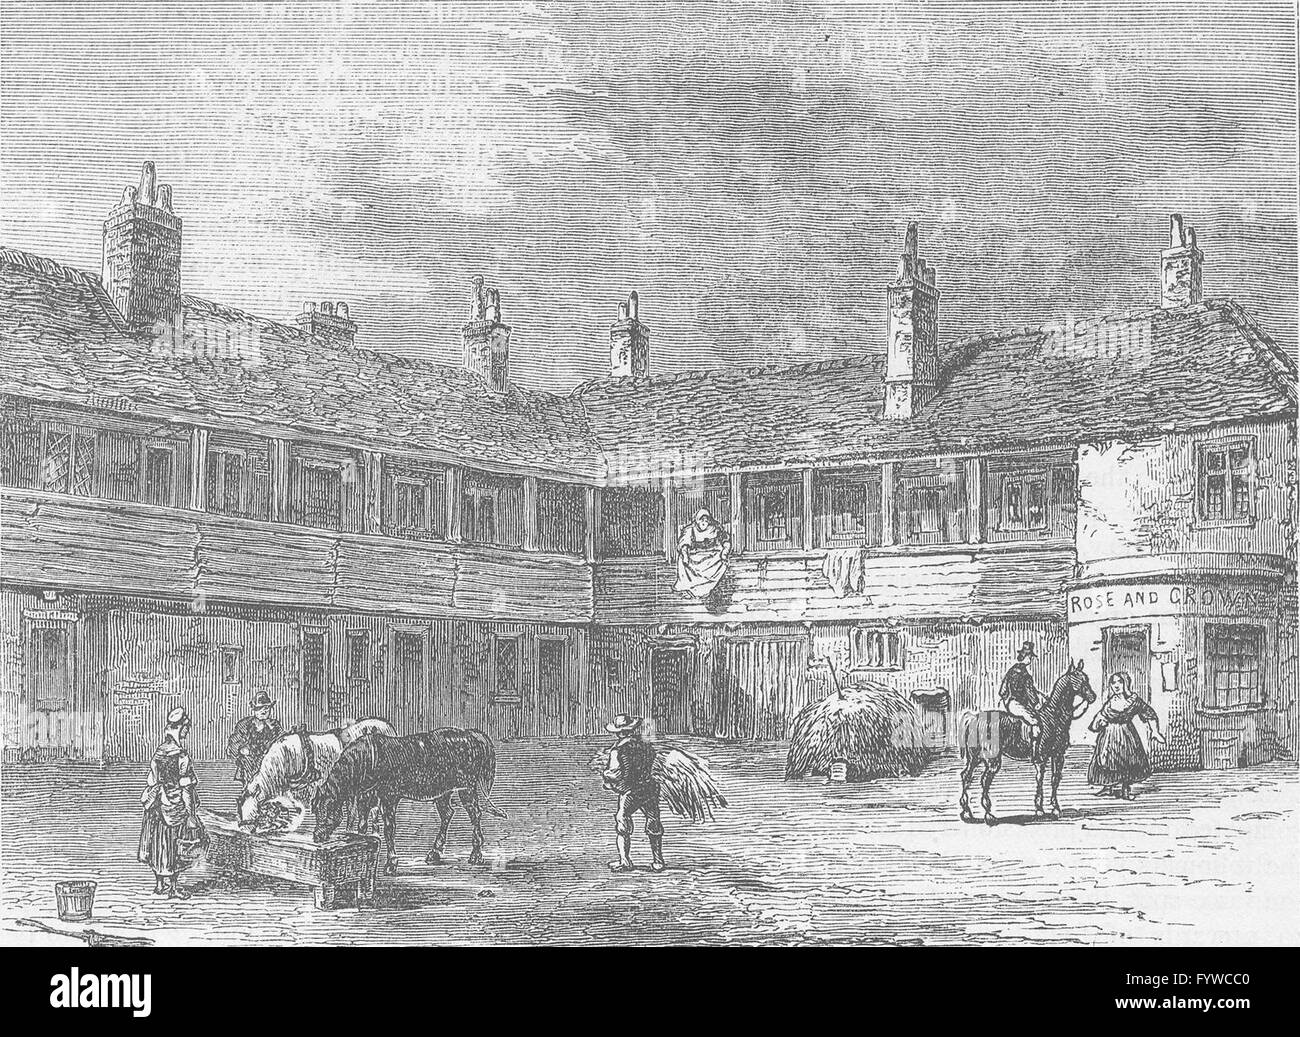 LONDON INNS: Court-yard of the 'Rose and Crown', 1820, antique print c1880 - Stock Image